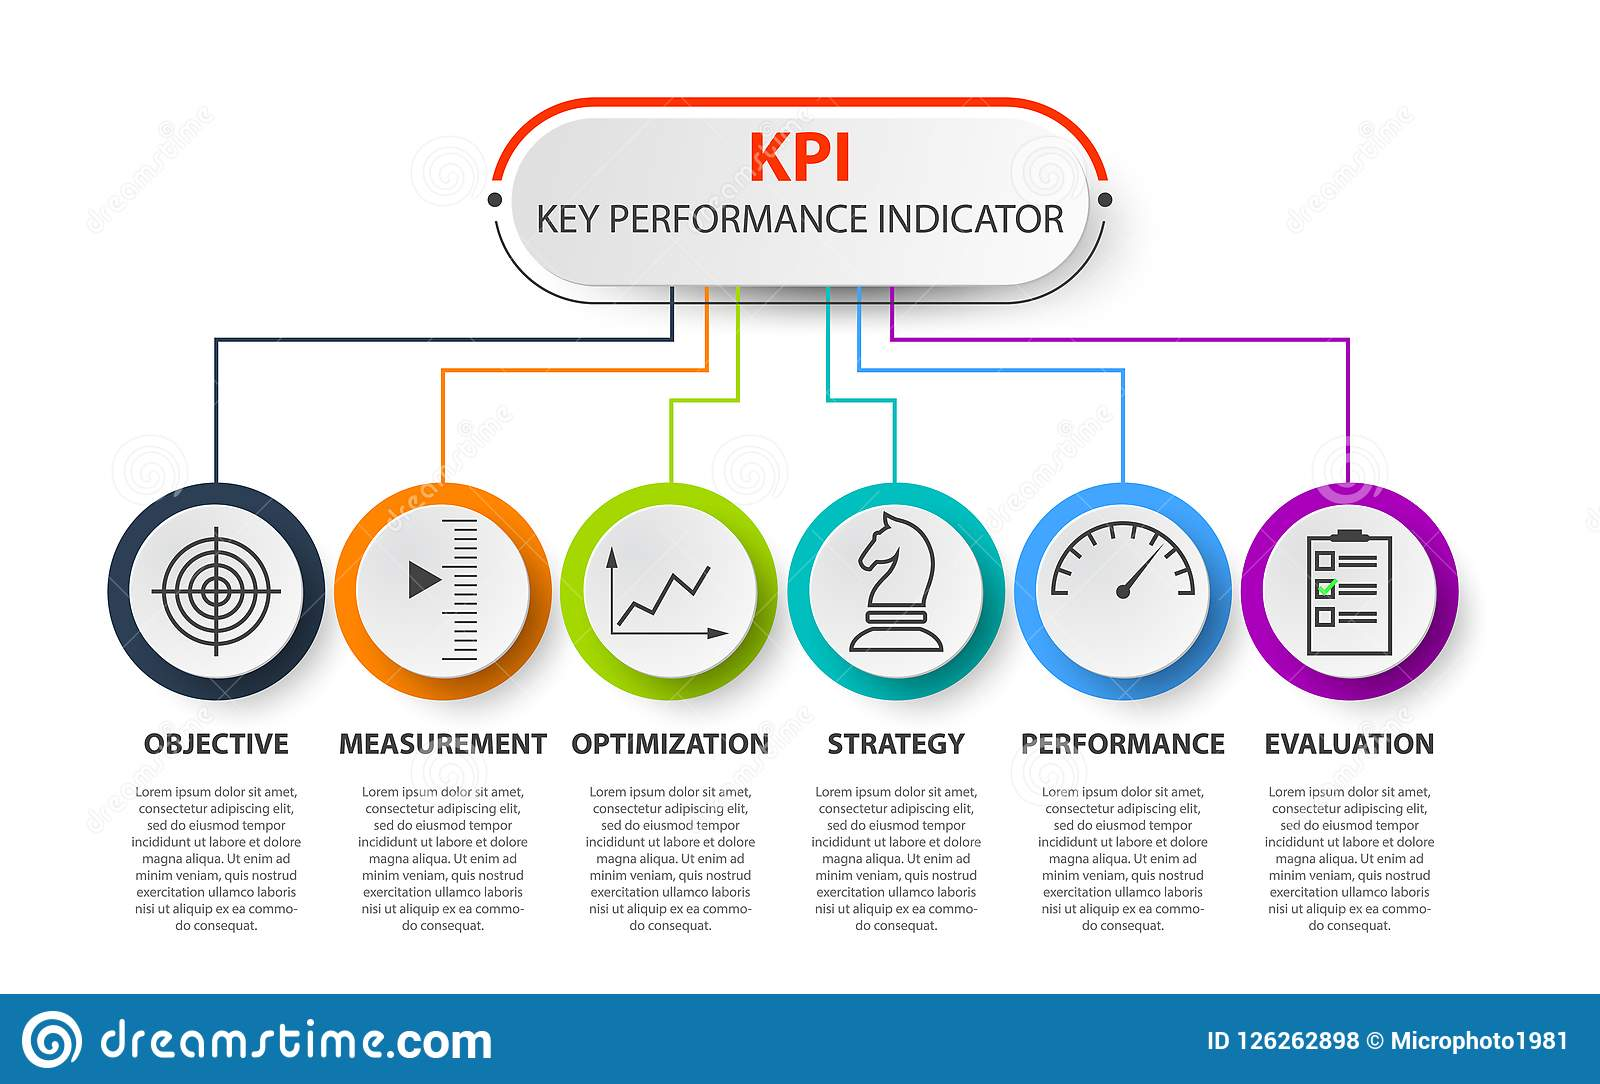 what is kpi in performance management